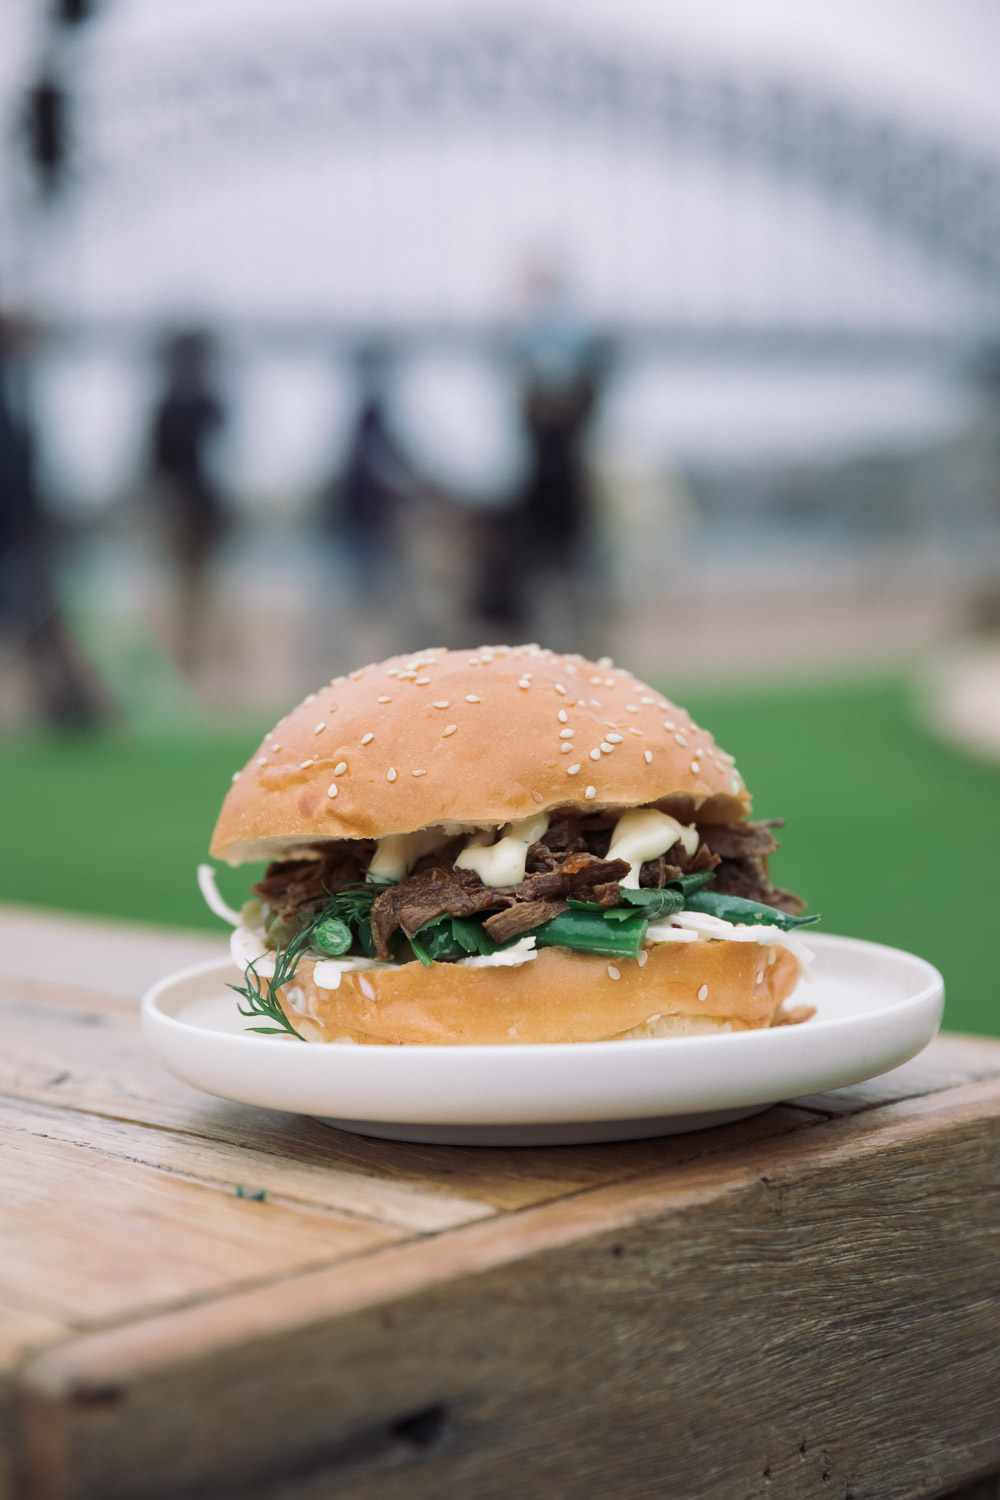 Homeground Festival 2016 - Kangaroo Slider